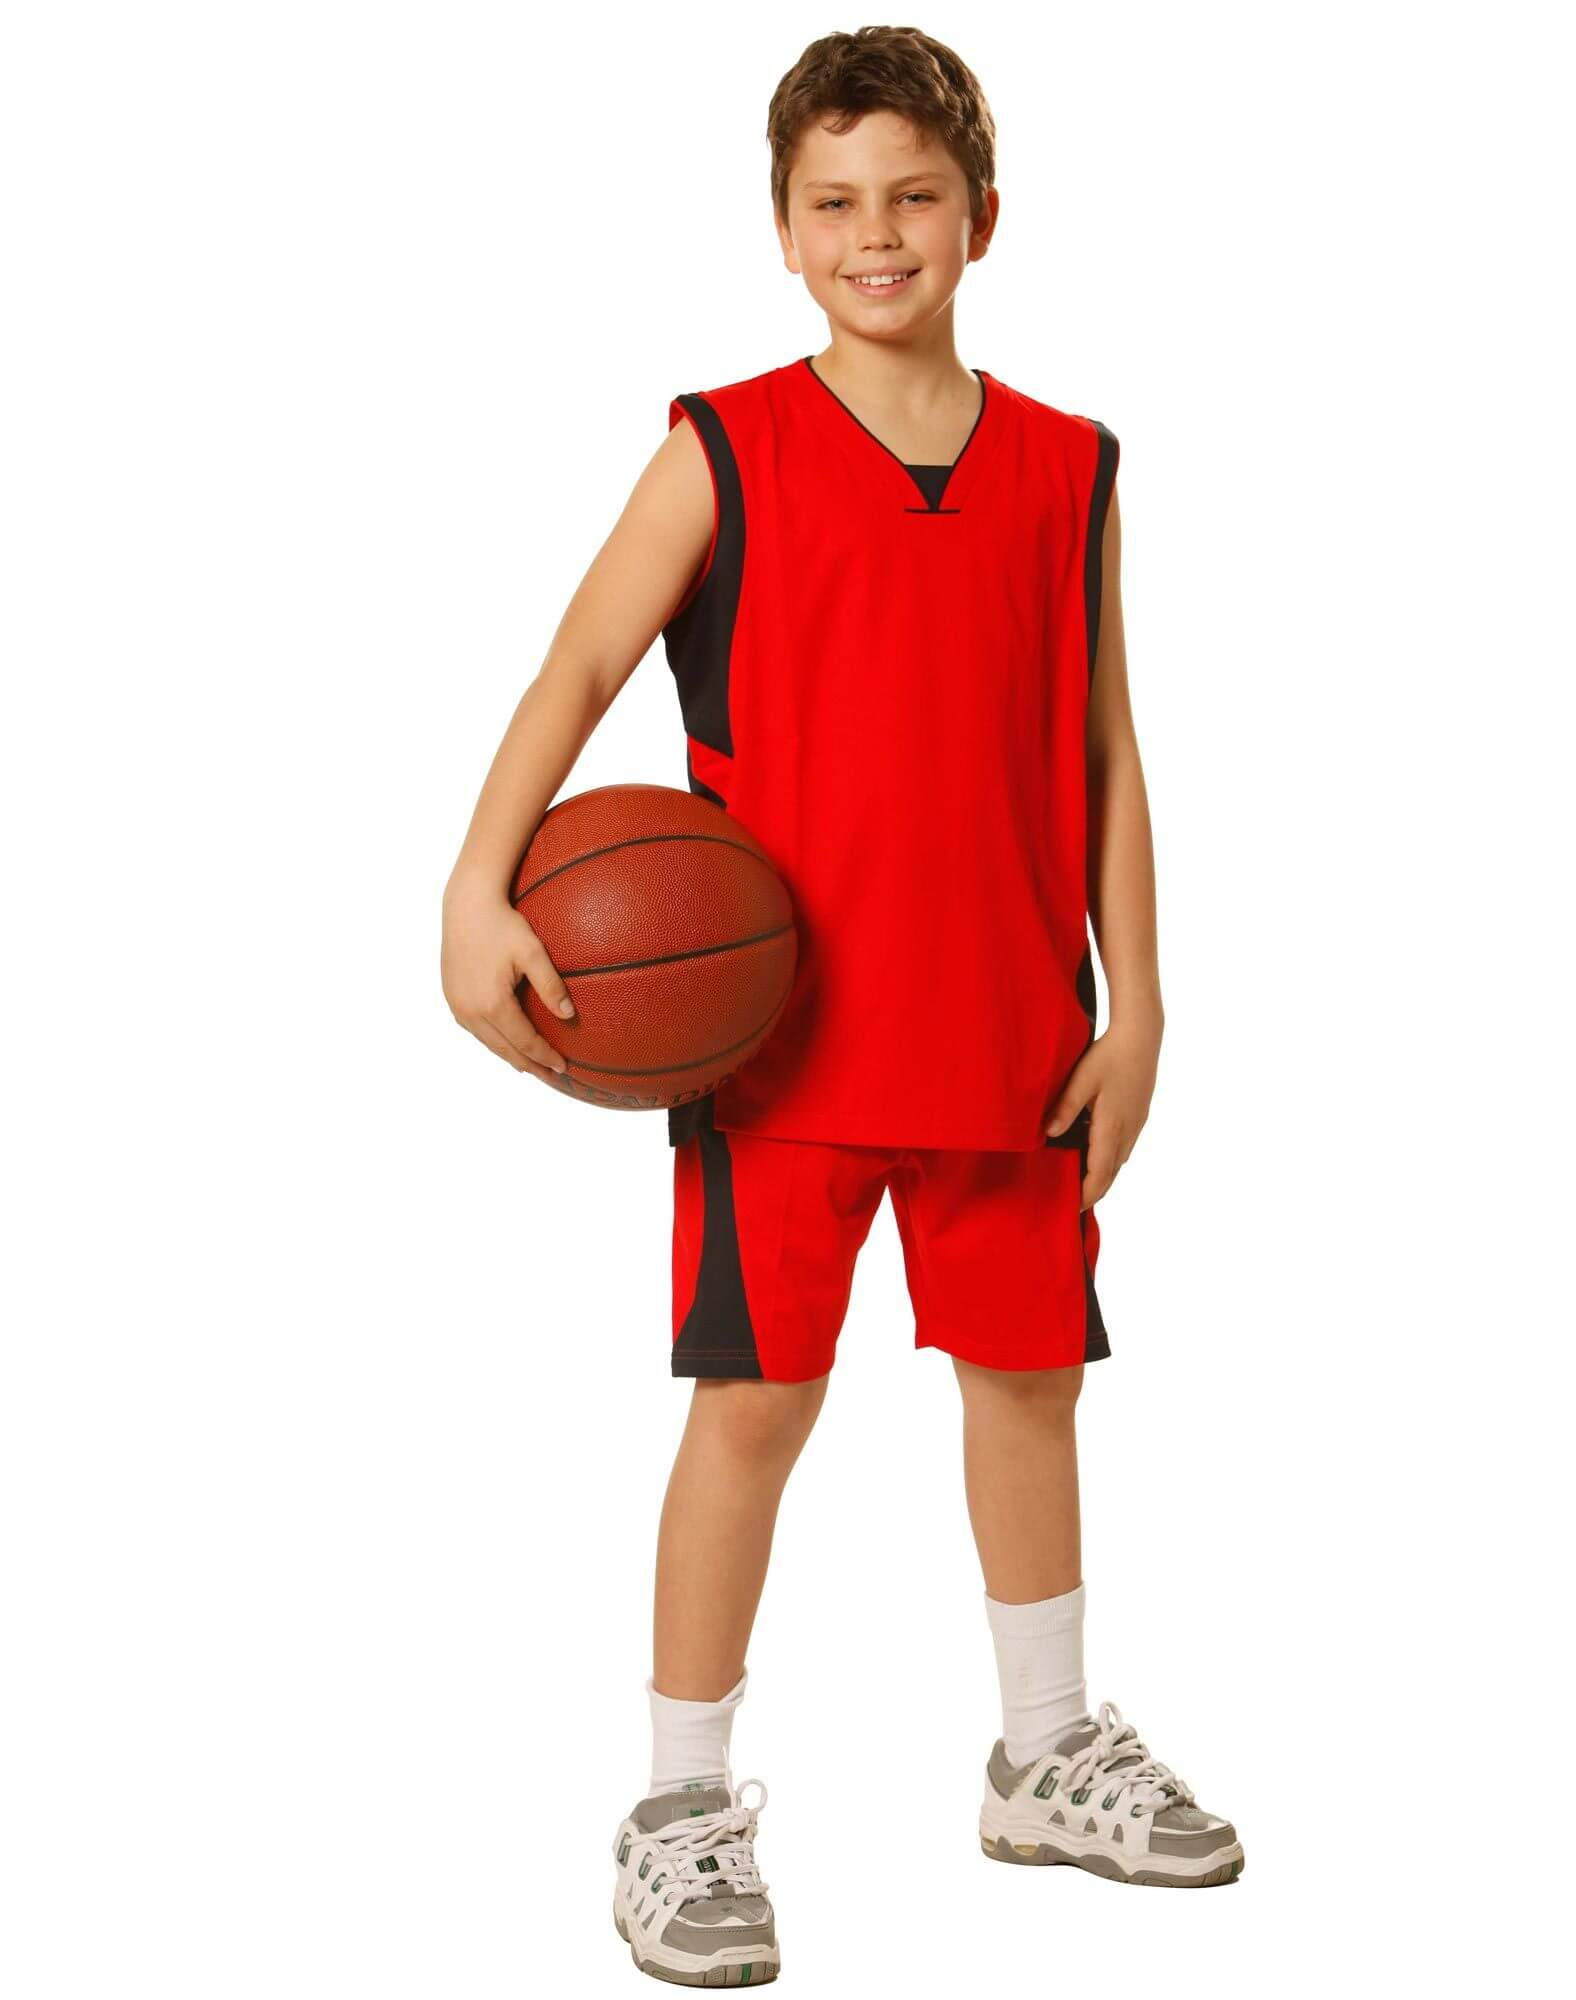 Kids Basketball Manufacturers